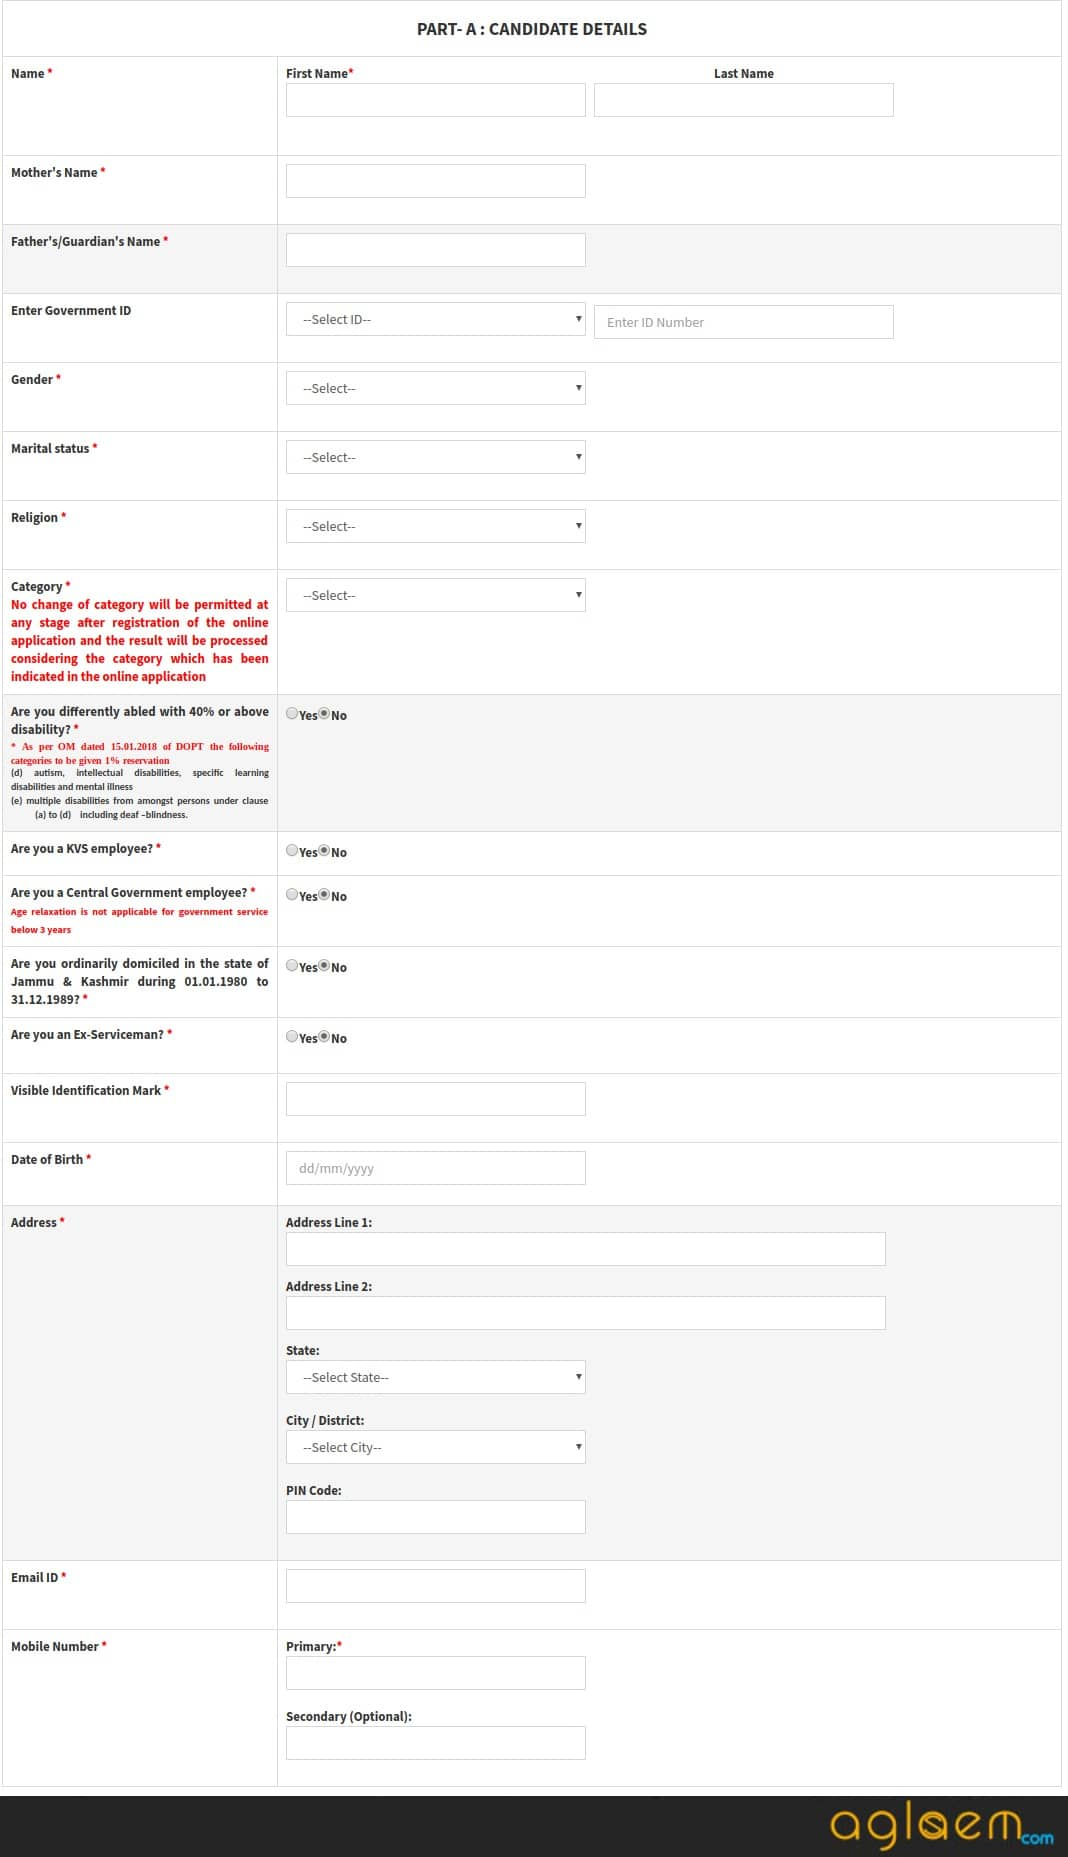 Part A of Application Form